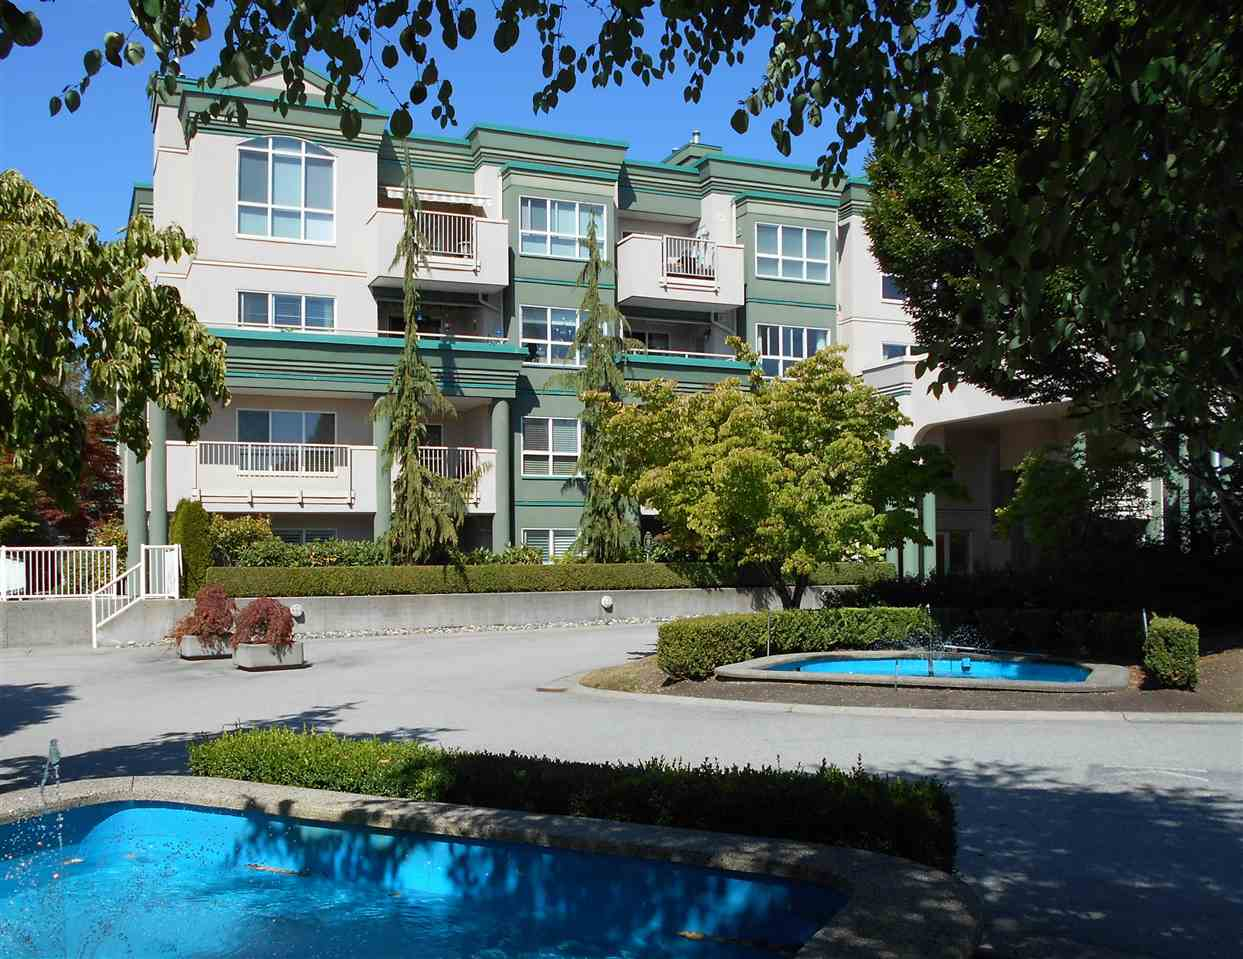 """HUGE, SUNNY AND QUIET 1,200 SQ' CORNER UNIT WITH WRAP-AROUND SUNDECK in the HIGHLY SOUGHT AFTER CHELSEA GARDENS! NEW APPLIANCES, NEW KITCHEN COUNTERTOPS, NEW BEAUTIFUL VINYL PLANK FLOOR THROUGHOUT, FRENCH DOORS INSTALLED IN 2ND BEDROOM, 2"""" CALIFORNIA BLINDS, NEW COMFORT-SIZED TOILETS, AND A NEW PHANTOM SCREEN DOOR AT THE BALCONY. Luxurious Chelsea Gardens has a gorgeous Clubhouse with POOL, HOT TUB, WORKSHOP, LOUNGE, LIBRARY, EXERCISE ROOM AND 3 GUEST SUITES plus RV PARKING!! CLOSE TO SHOPPING, RESTAURANTS, PARKS, TRANSIT, AND ENTERTAINMENT! Great for downsizers and anyone who appreciates luxurious living! Click on the Virtual Tour!  SOLD SUBJECT TO PROBATE."""